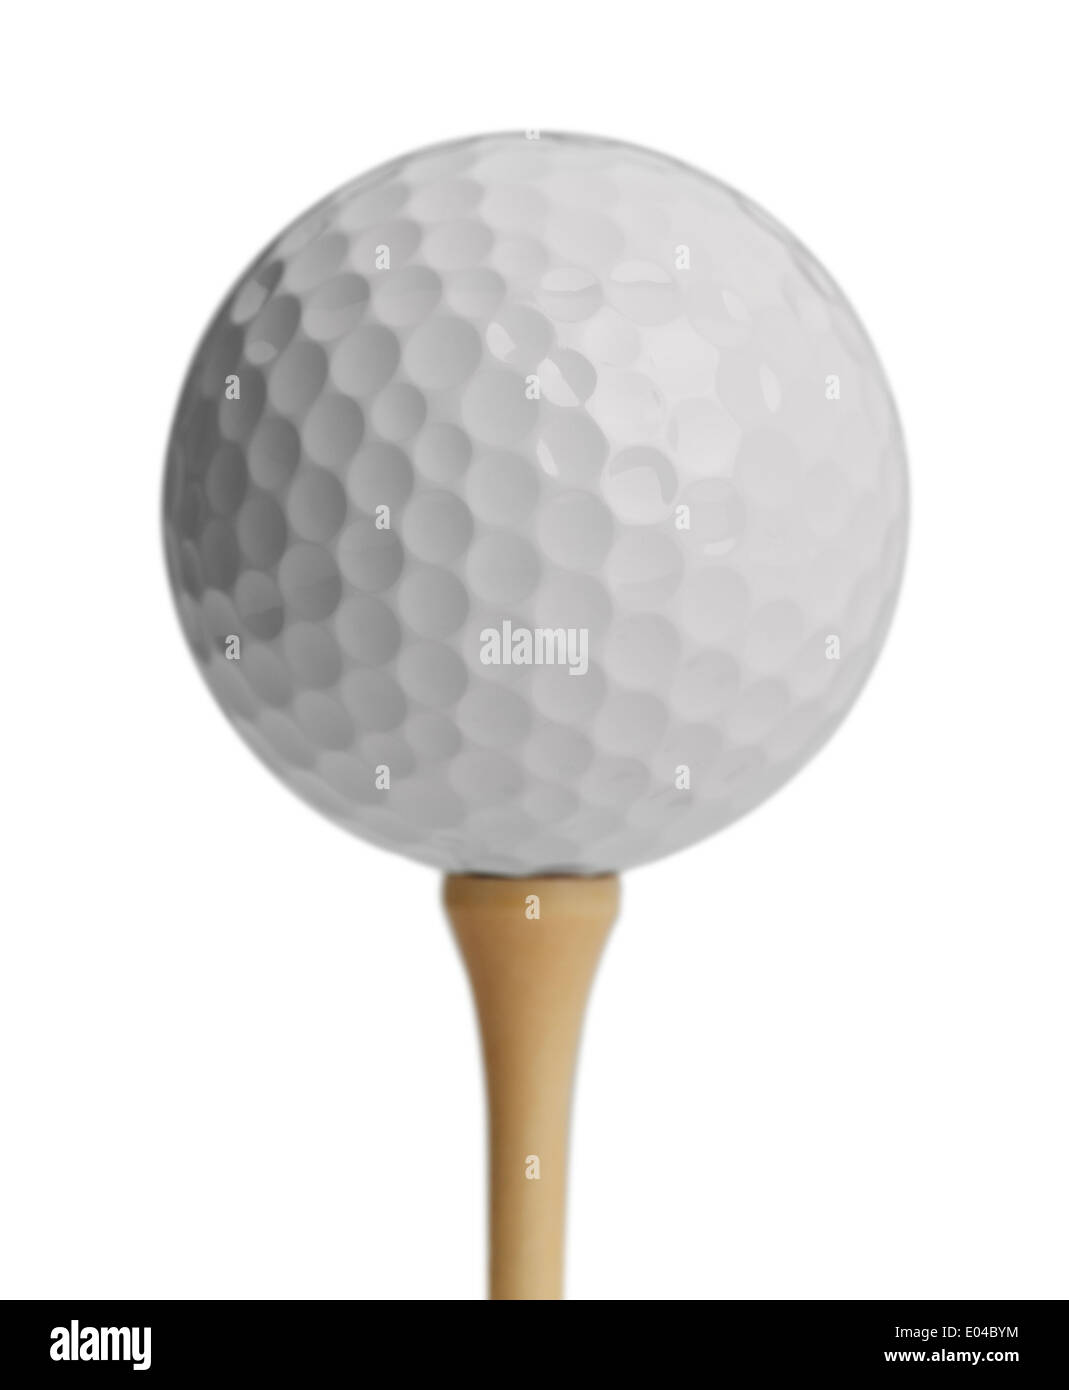 White Golf Ball On Tee Isolated on White Background. - Stock Image